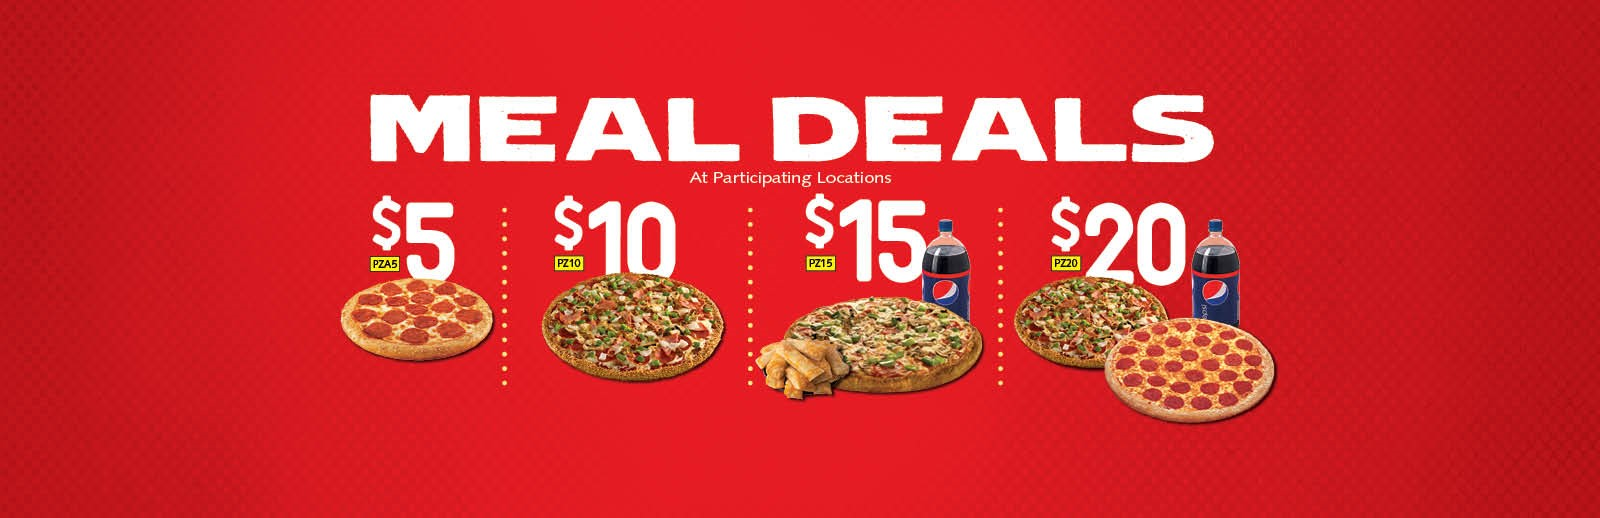 pizza deals, coupons and specials